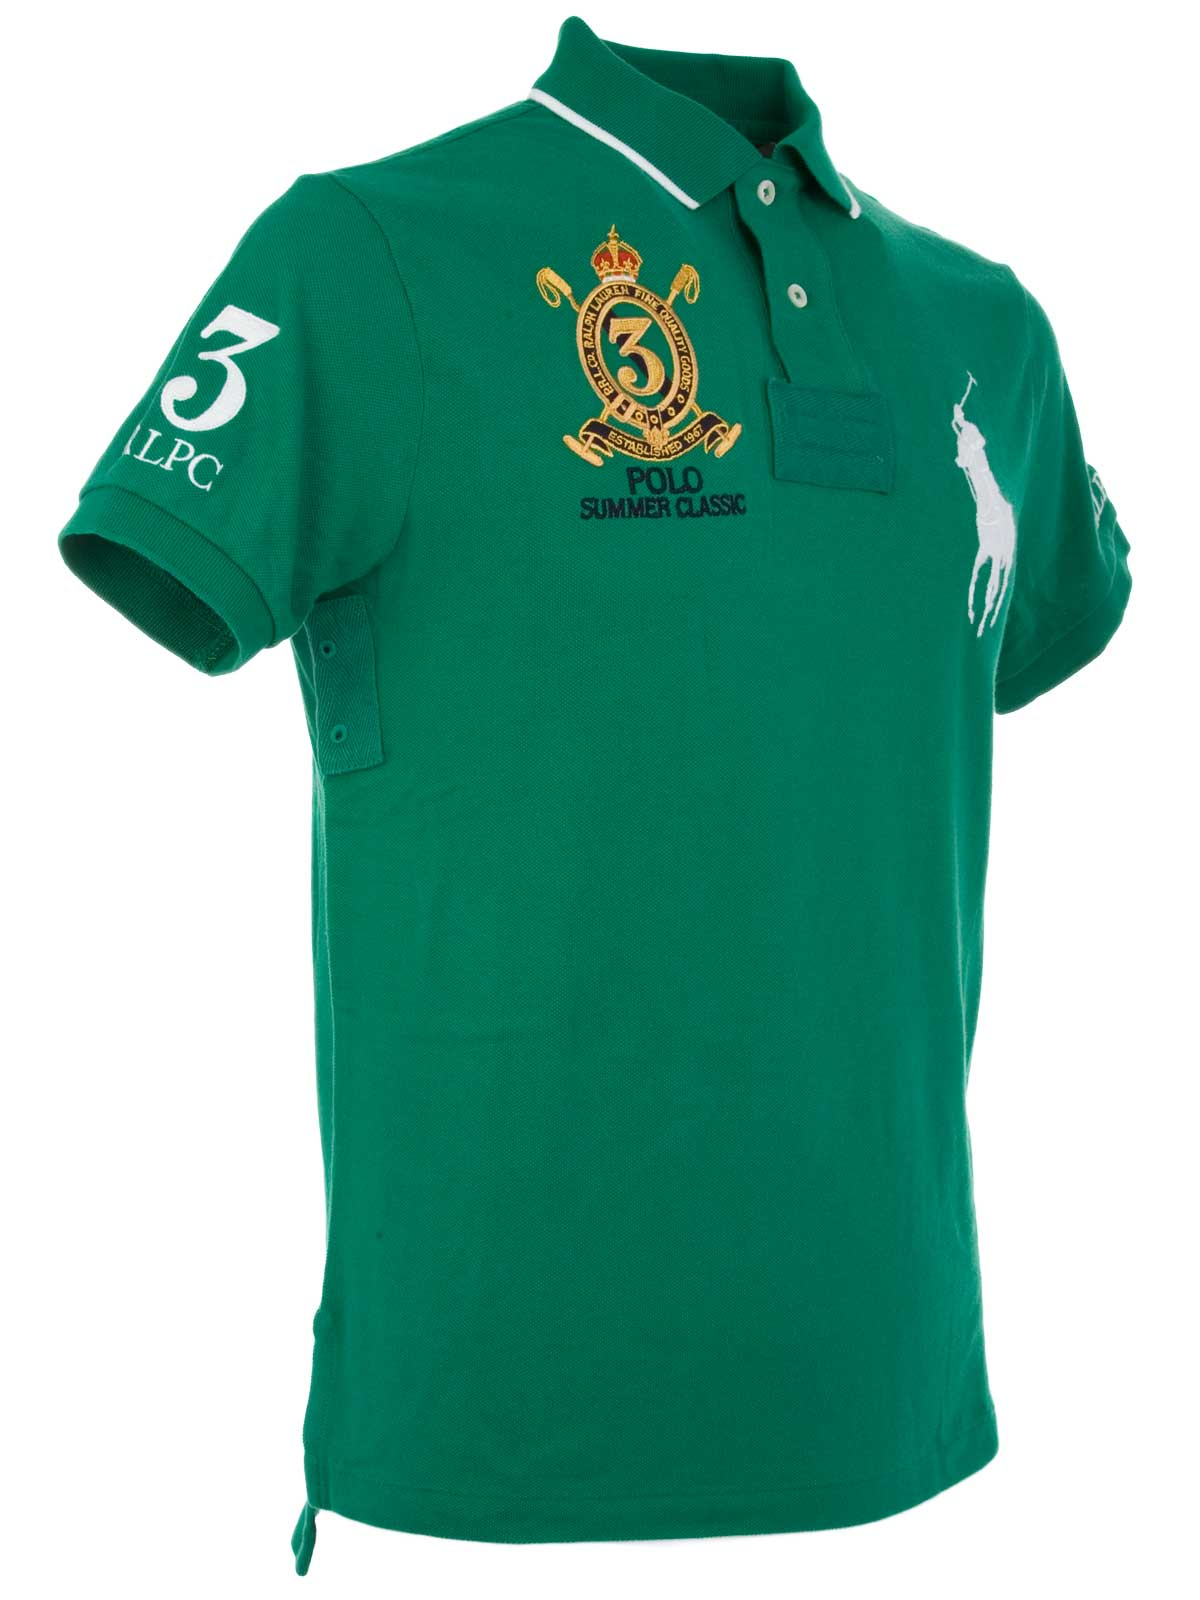 Polo ralph lauren summer classic polo shirt a3642 for Order company polo shirts